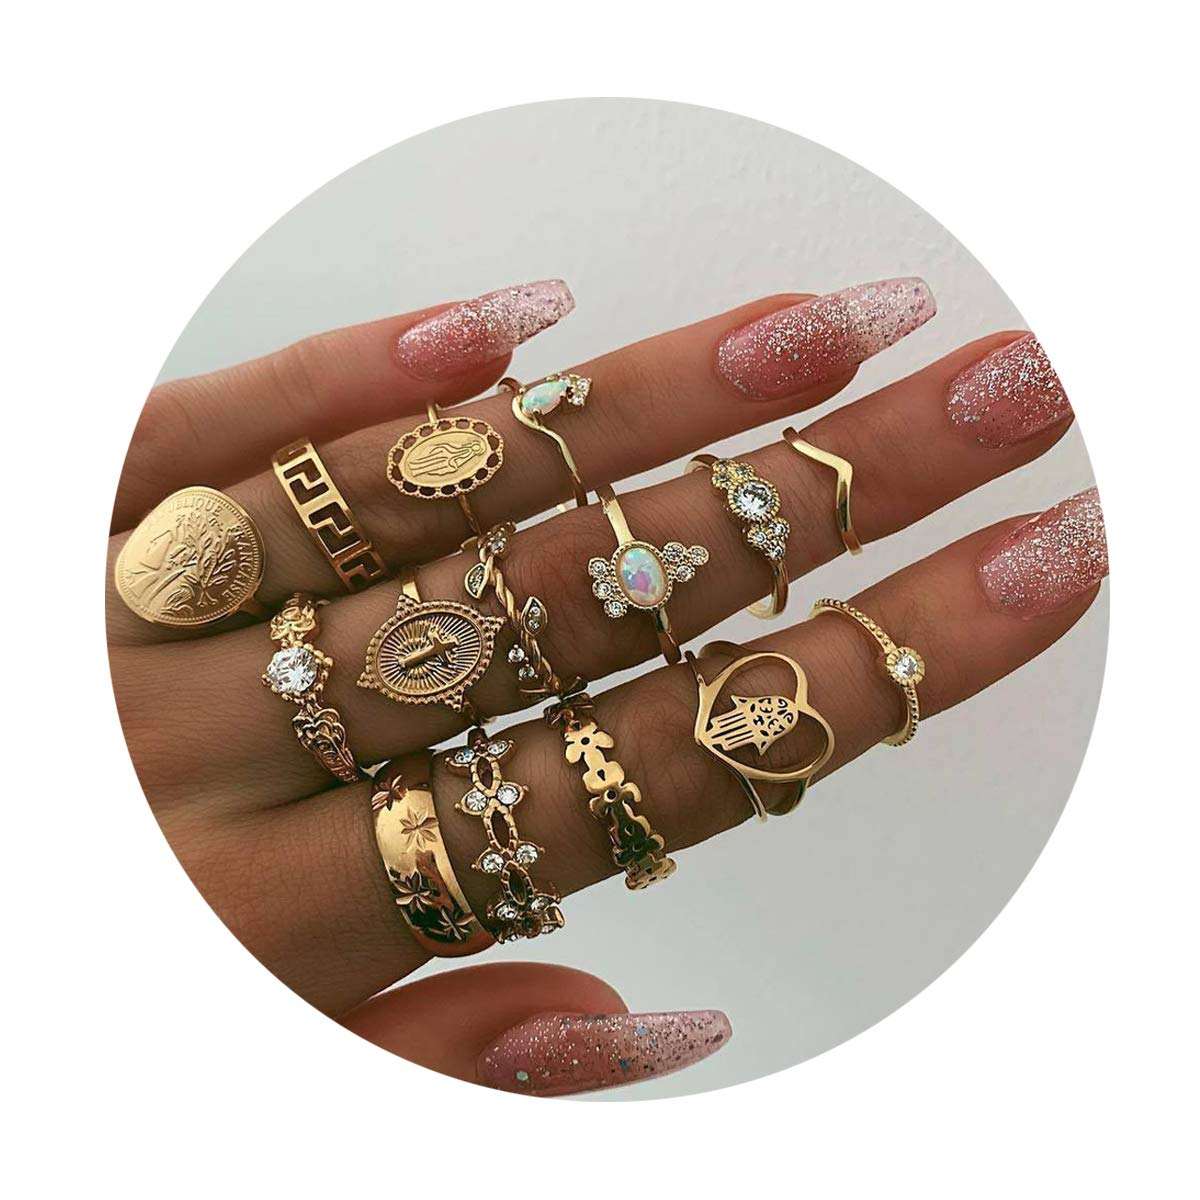 10-15PCS Bohemian Crystal Joint Midi Knuckle Stacking Ring Sets,Retro Gem Finger Rings Sets Comfort Fit Size 5 to 9 (D:15pcs-gold) by Is Never Enough